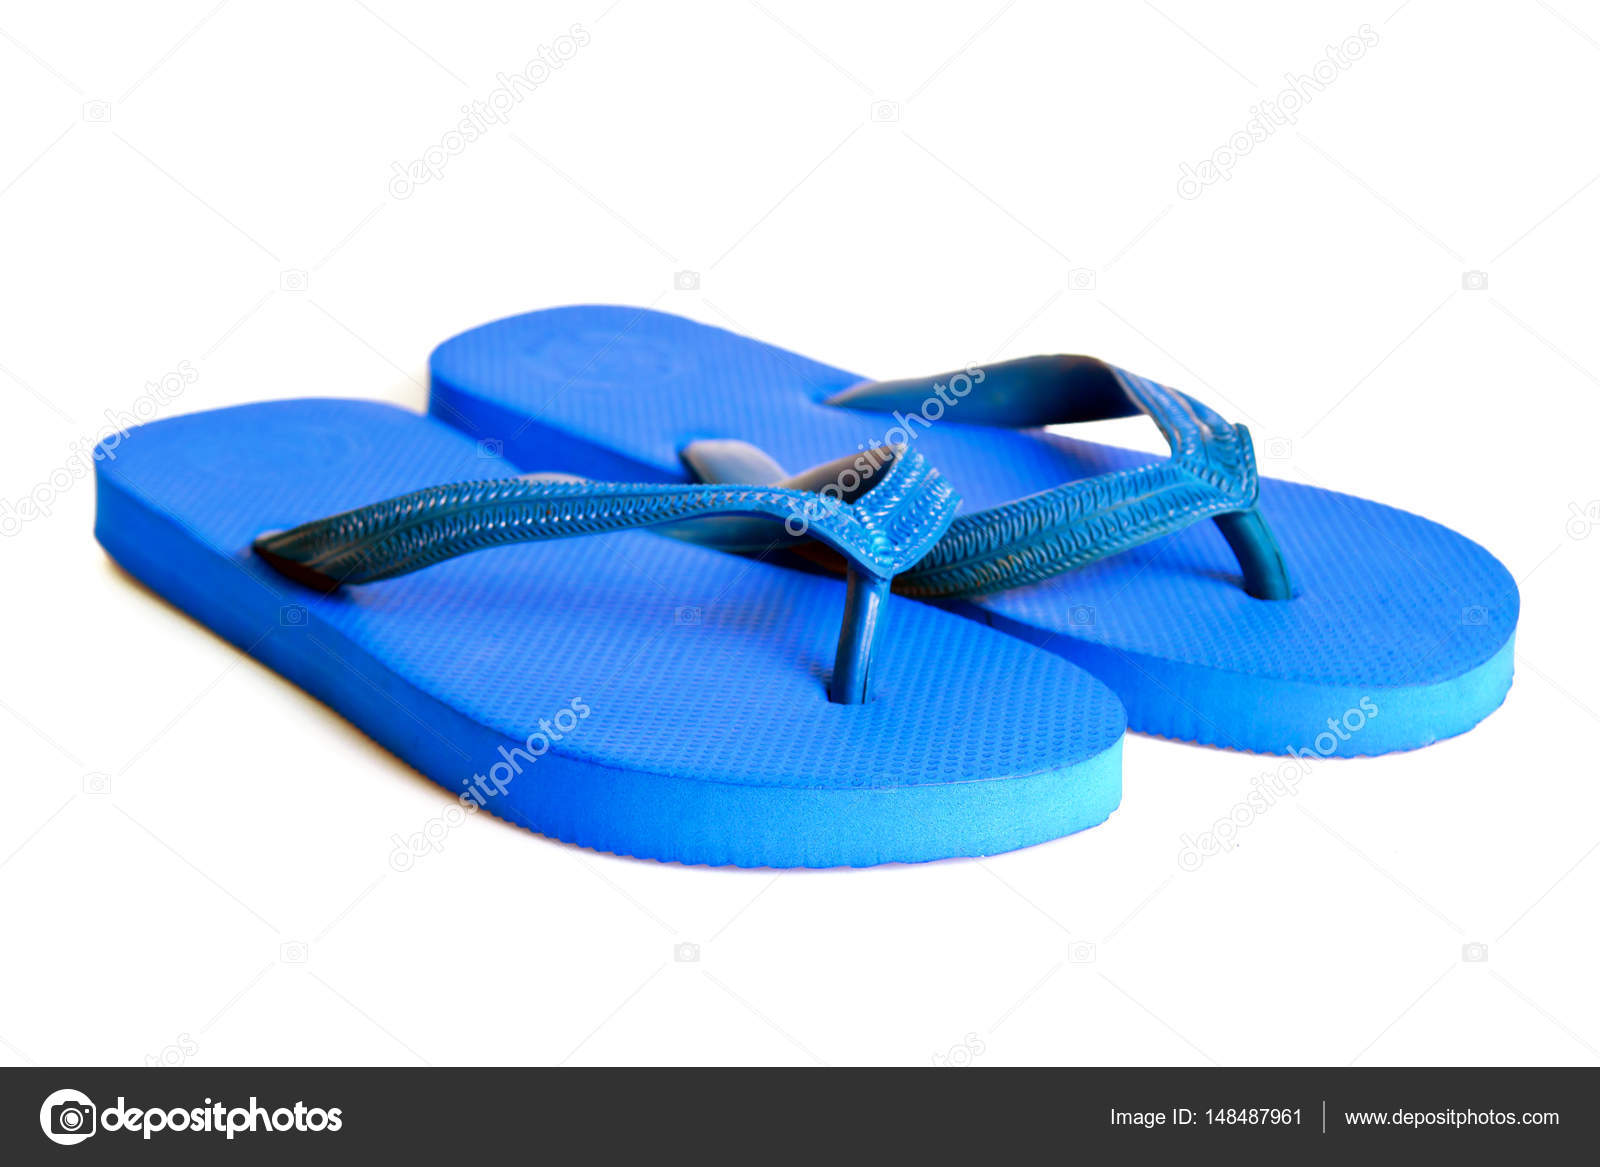 d031d280a9e Rubber embed with plastic sandal or slipper product with black and yellow  stripes isolated on white — Photo by SuradechK